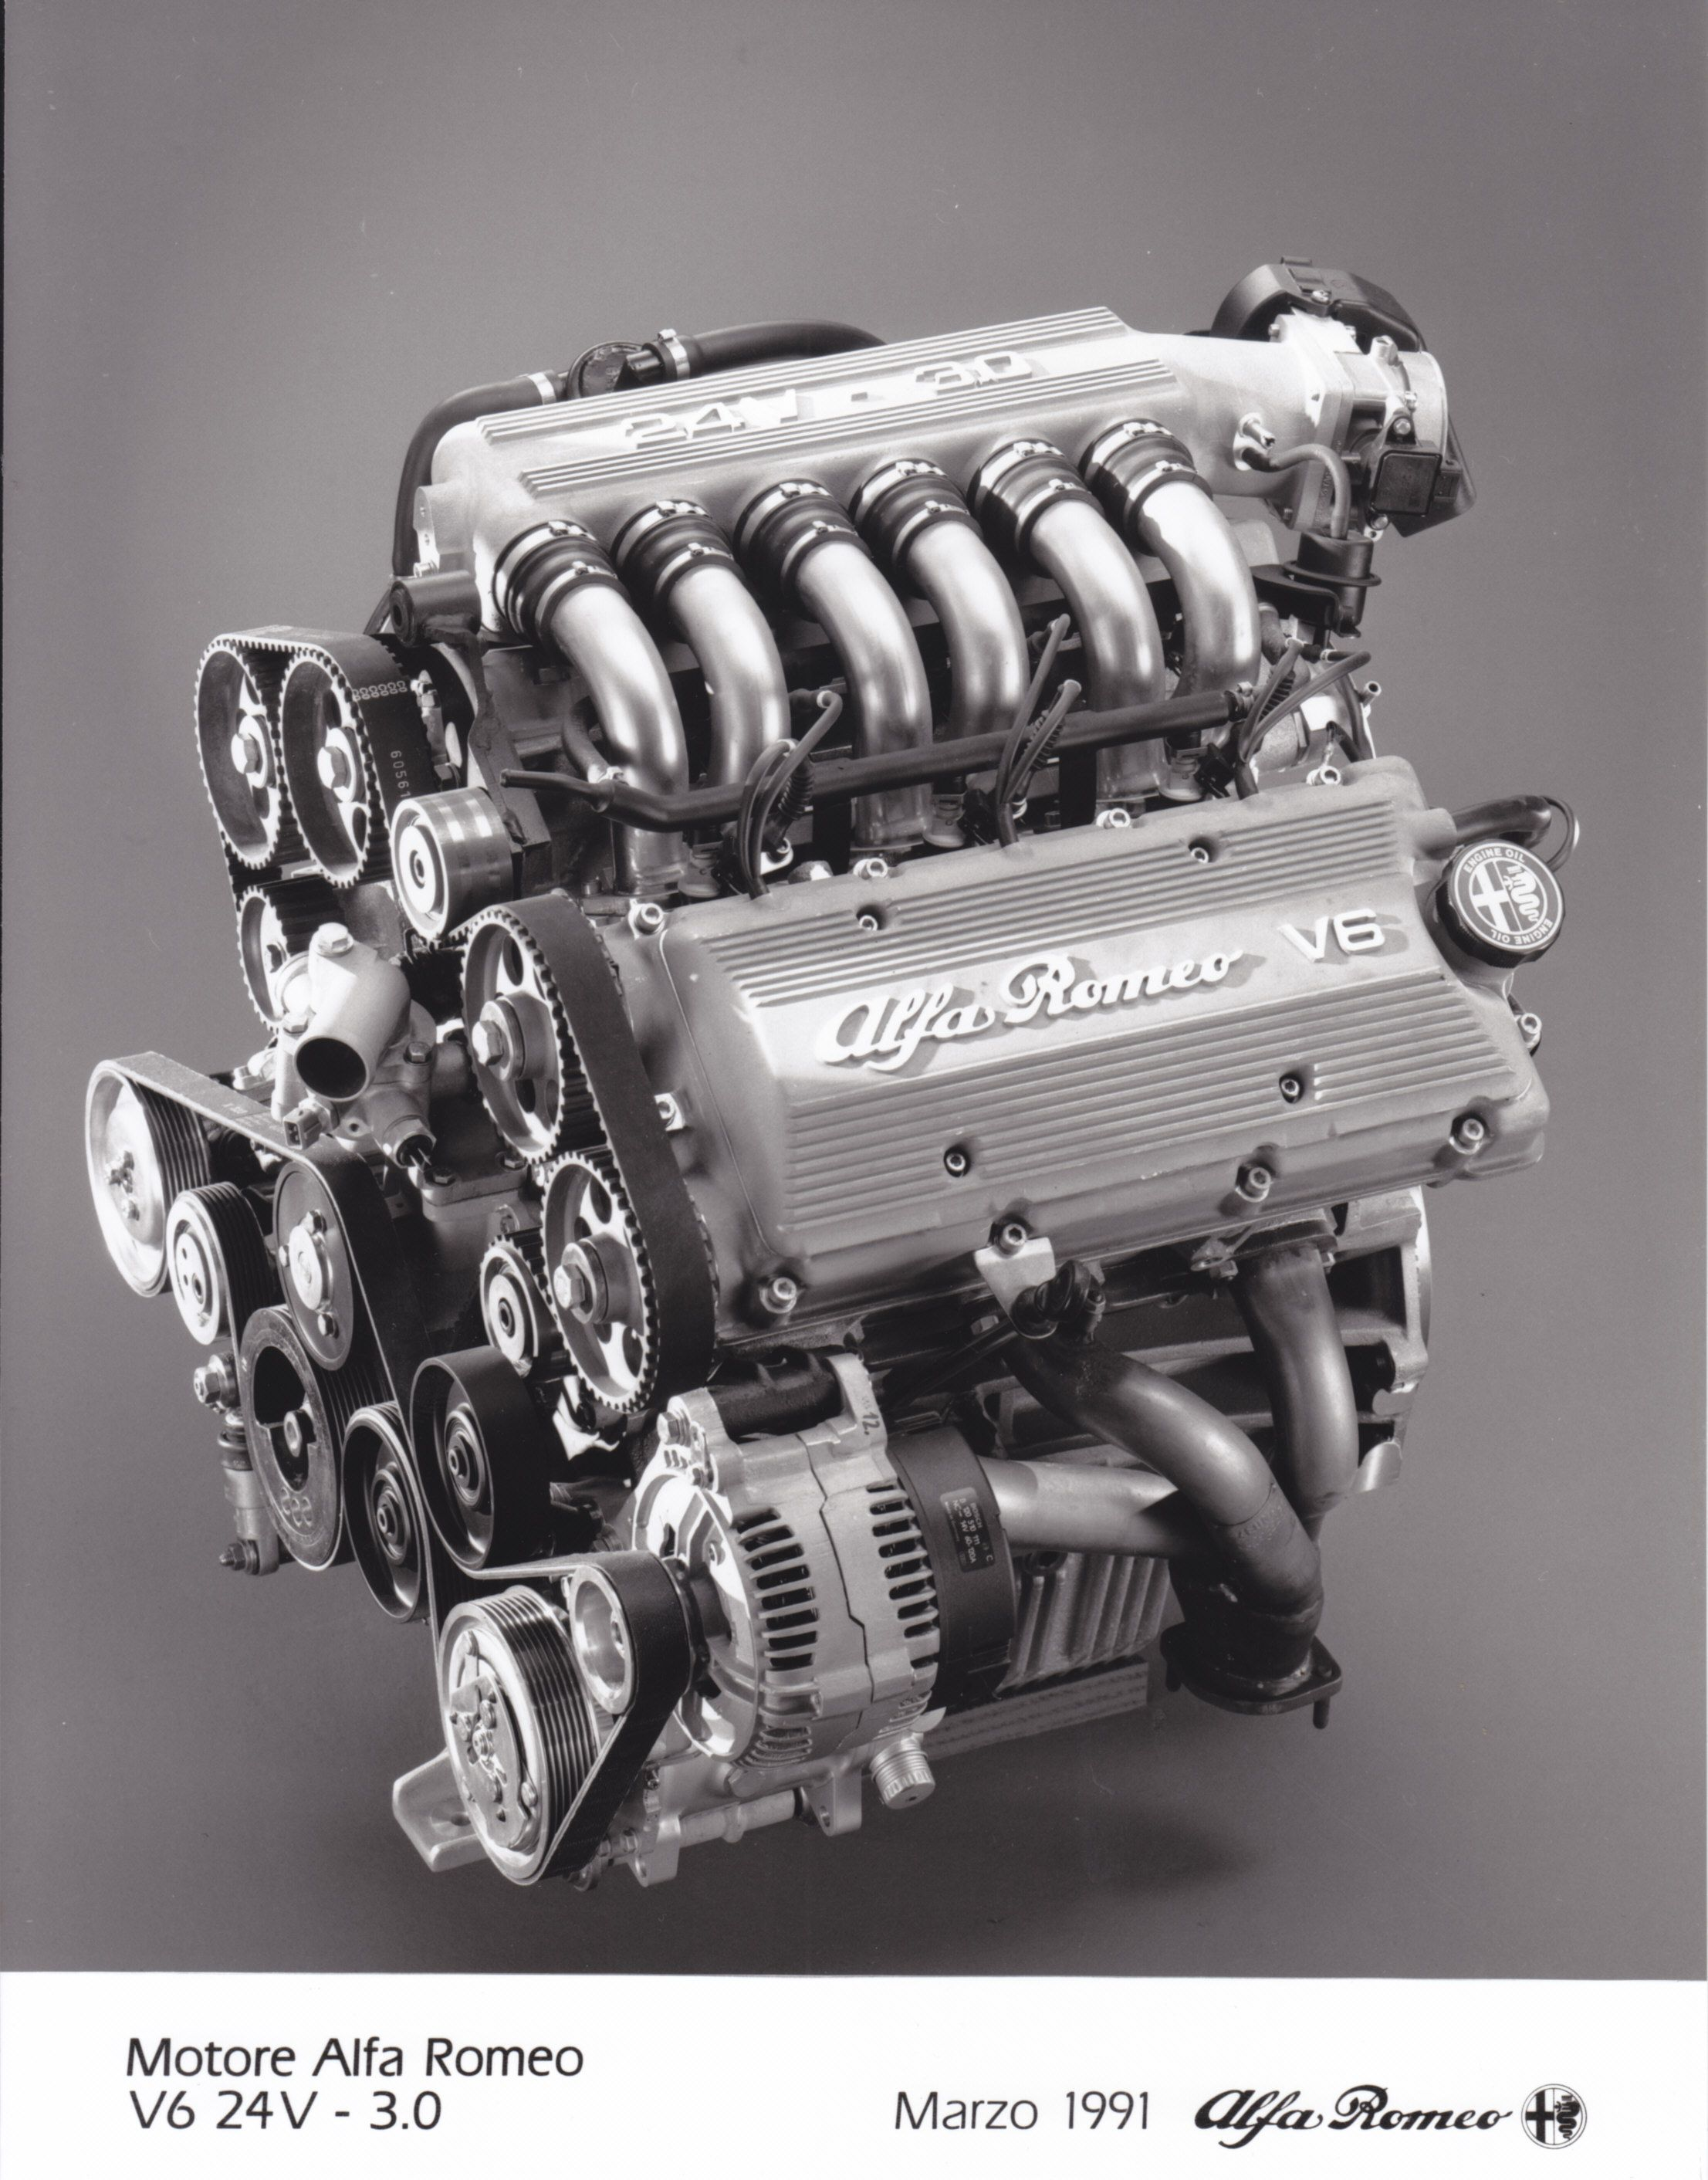 Alfa Romeo V6 24V 3 0 engine factory issued March 1991